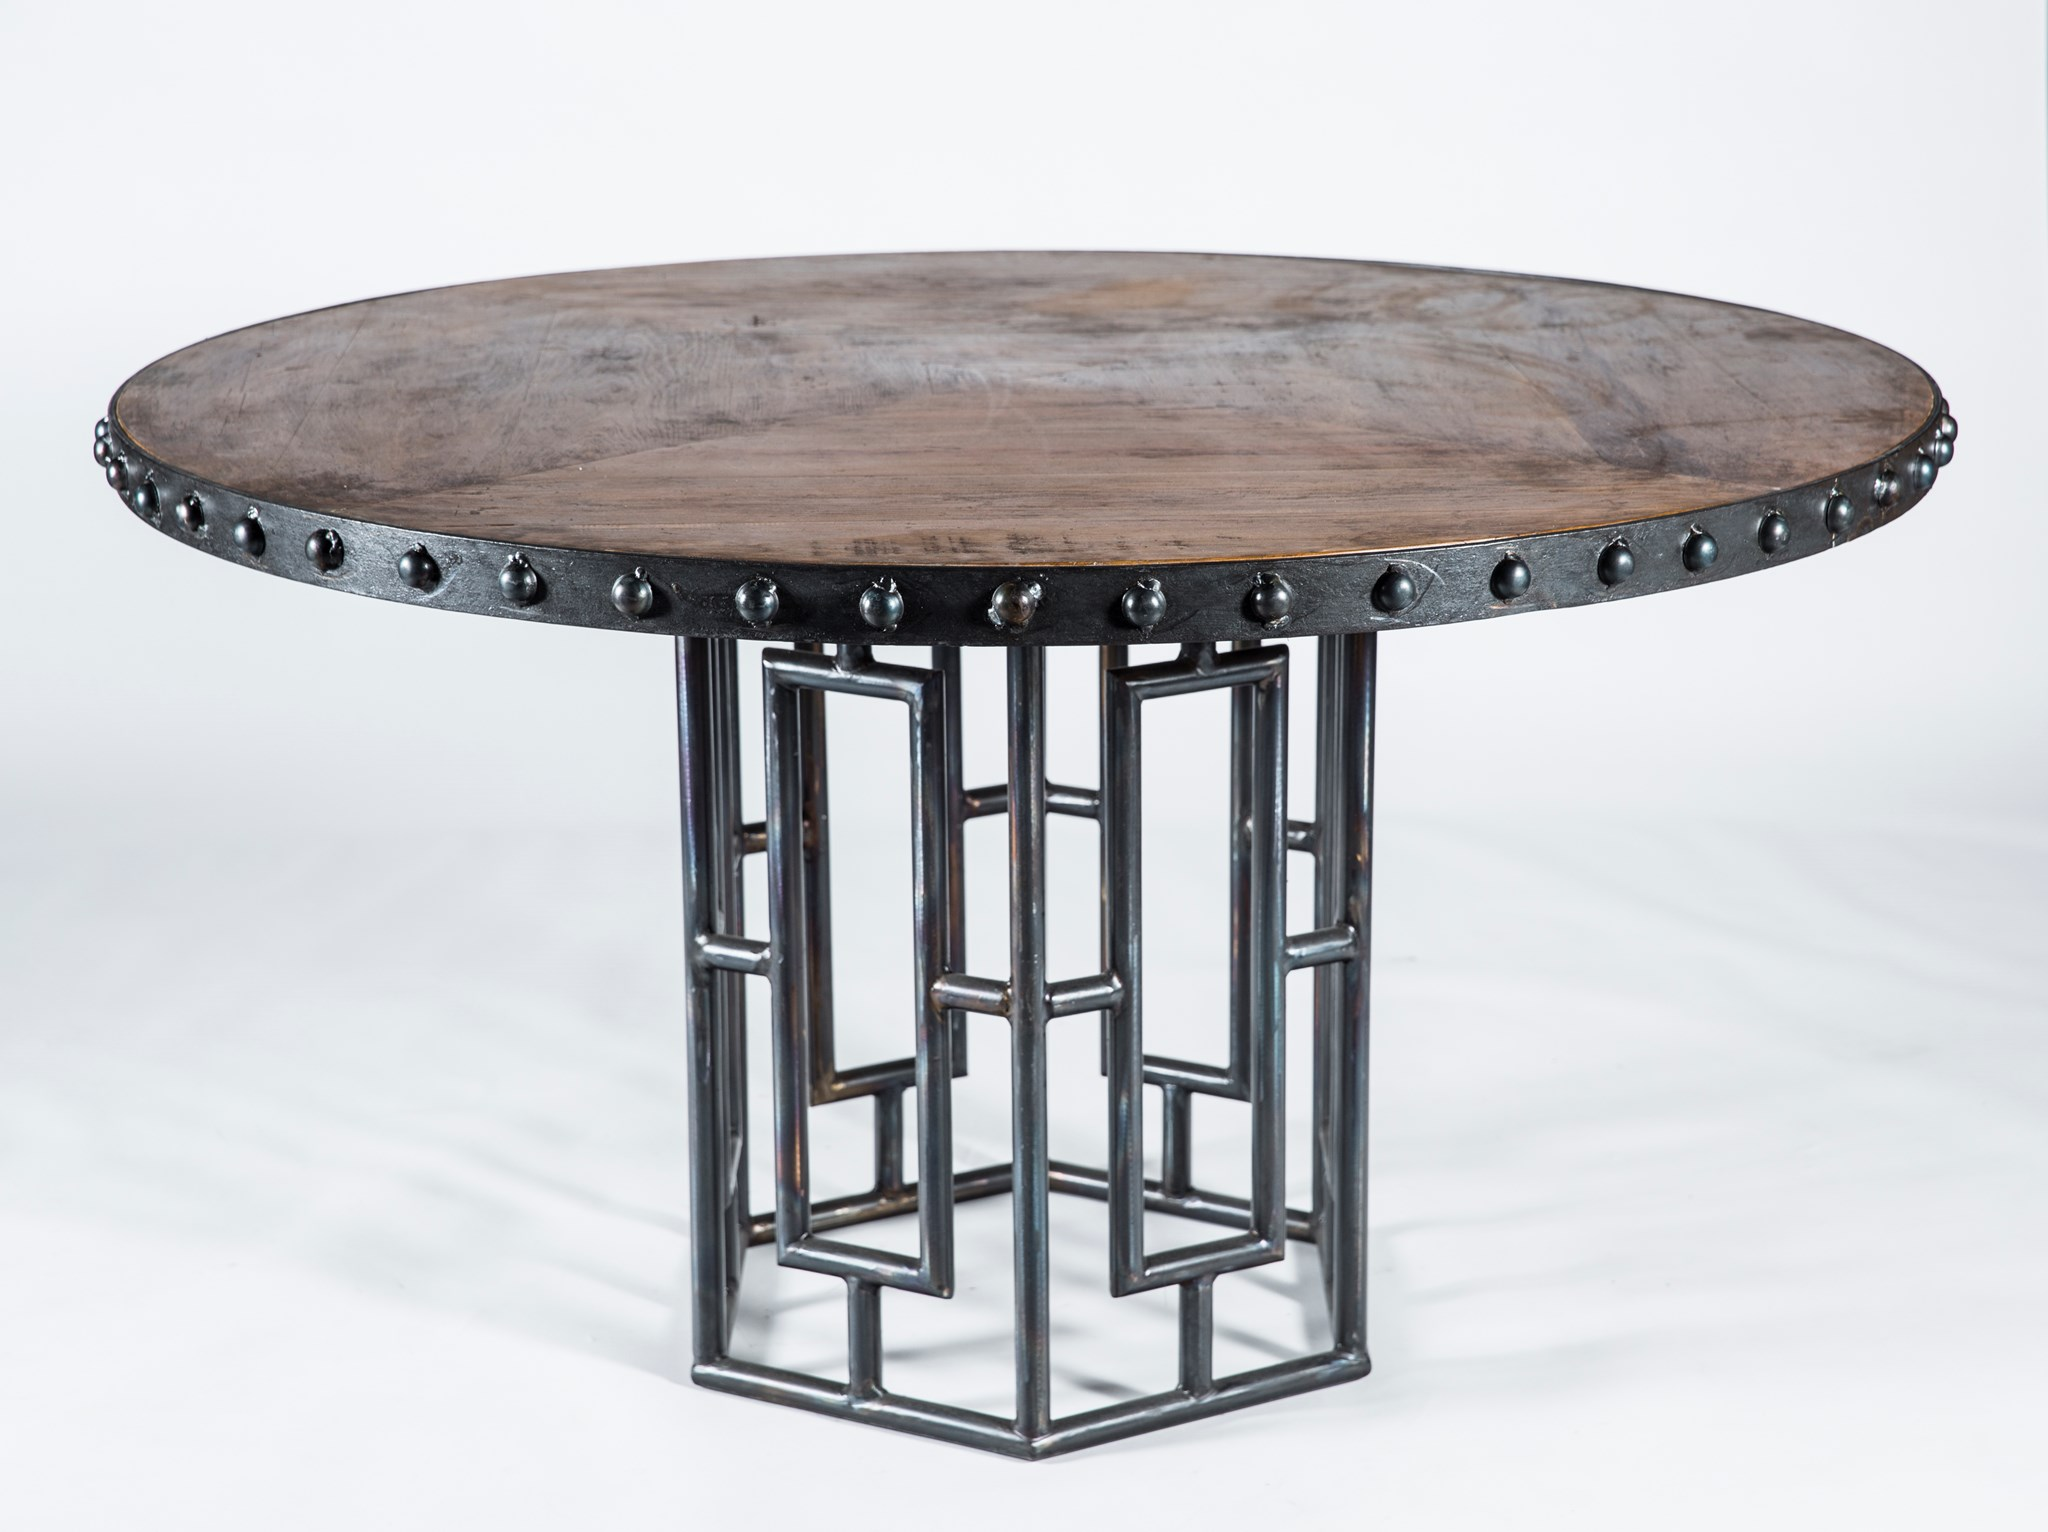 Hudson Dining Table With 48 Round Wood Top With Iron Nail Head Edge    Boulevard Urban Living